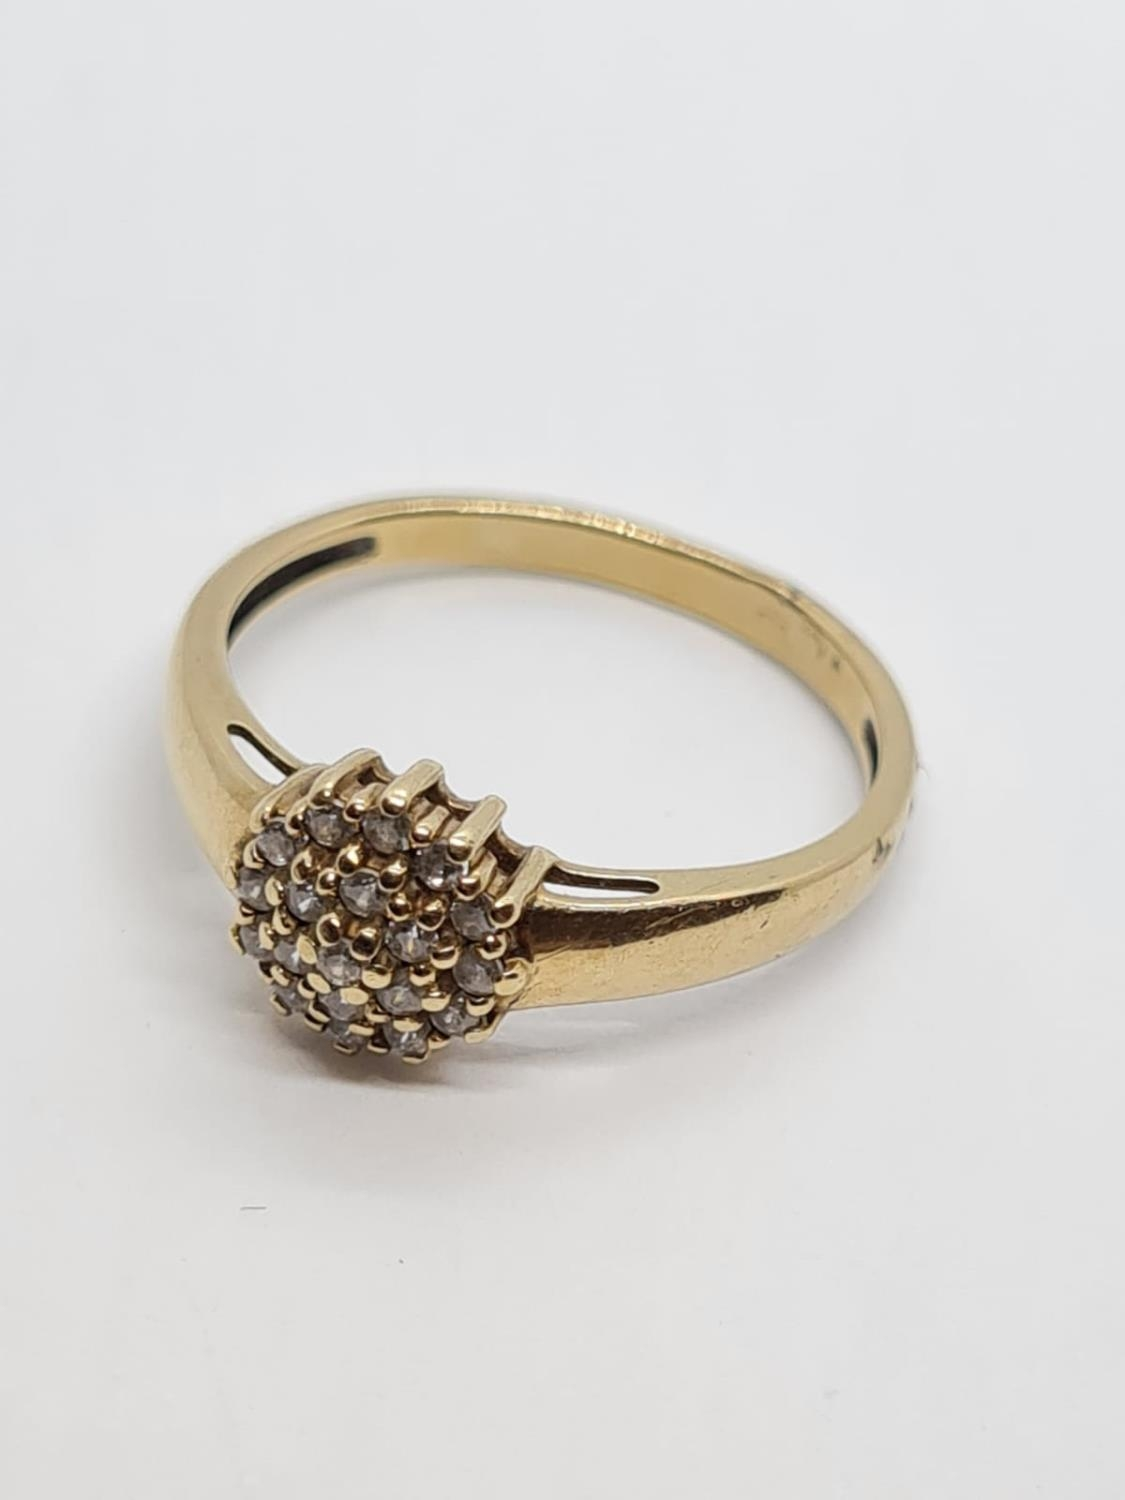 9K YELLOW GOLD CZ STONE SET CLUSTER RING WEIGHT 1.7G SIZE M